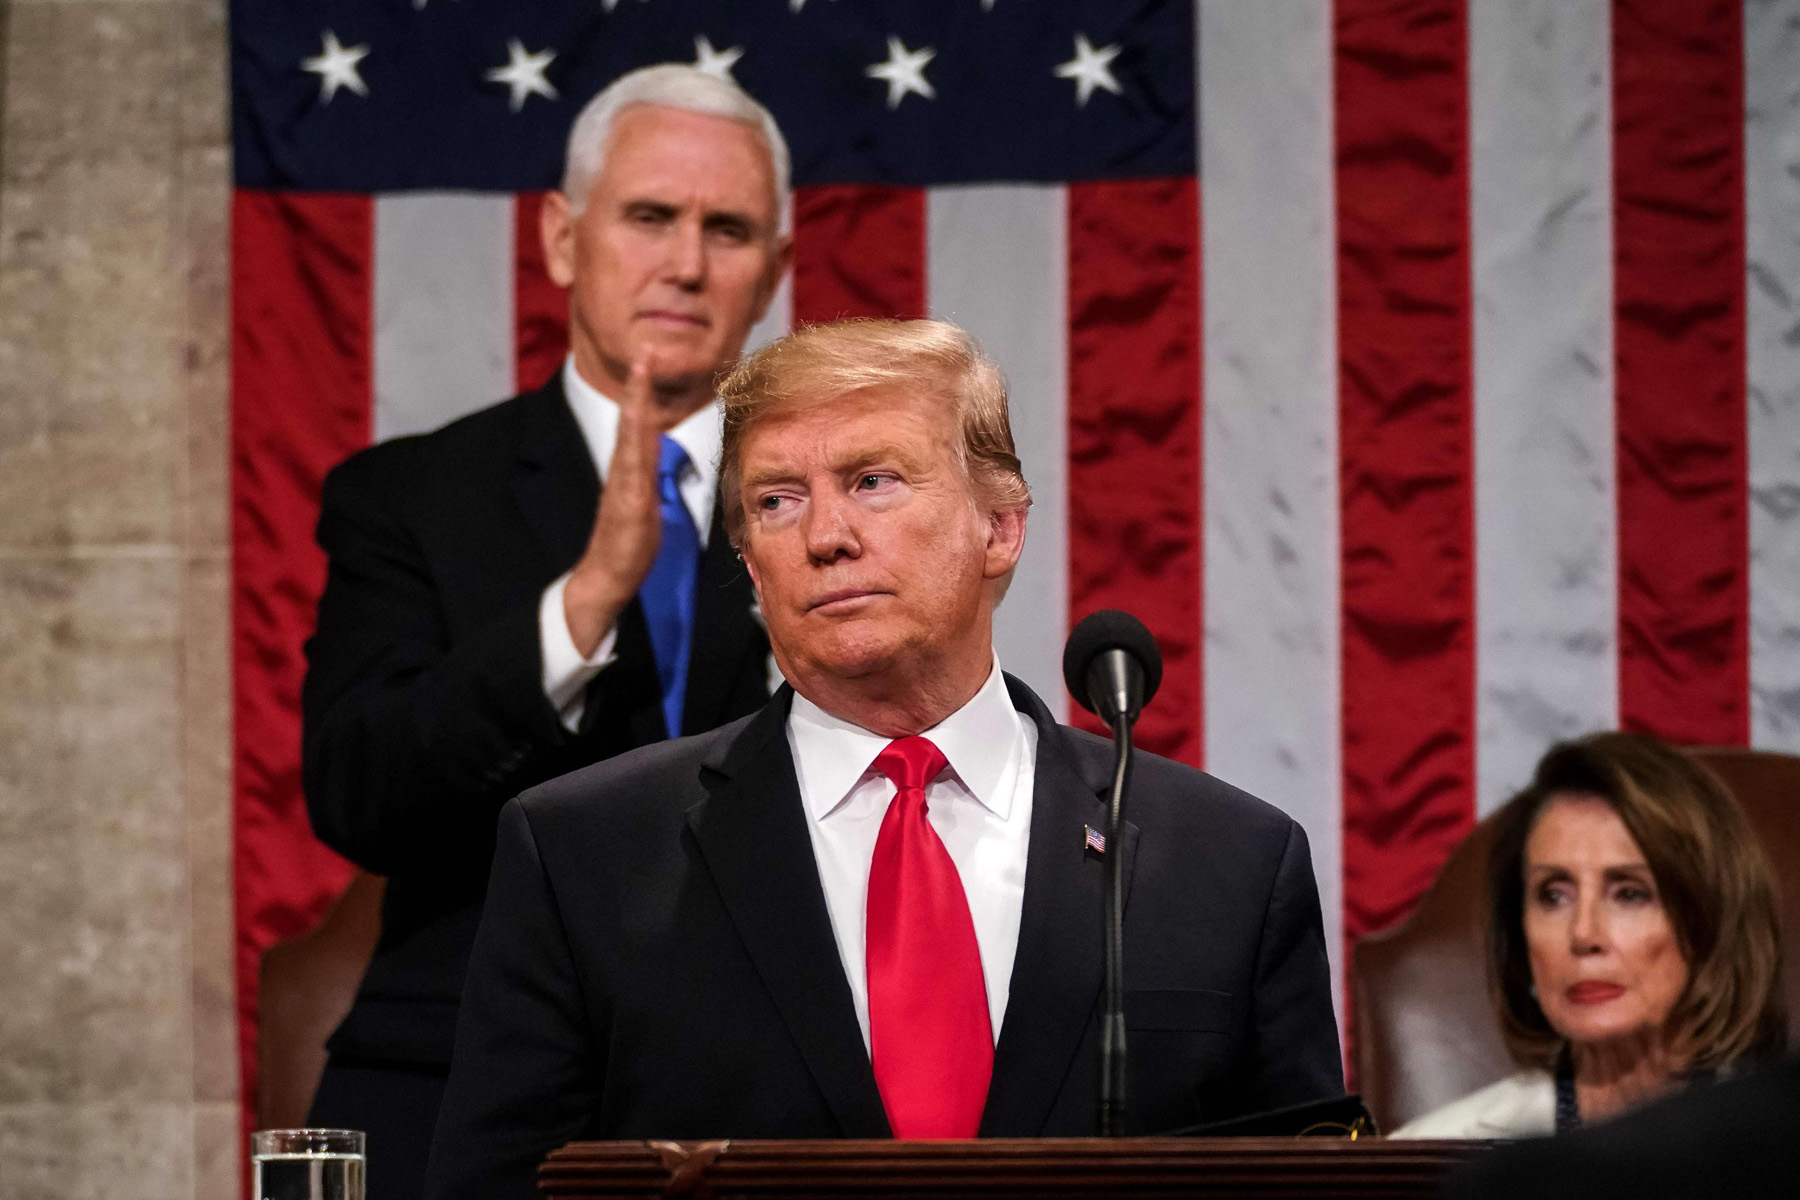 Foreign policy almost forgotten. Trump delivers the State of the Union address, alongside Vice President Mike Pence and Speaker of the House Nancy Pelosi, at the US Capitol in Washington, DC, February 5. (AFP)